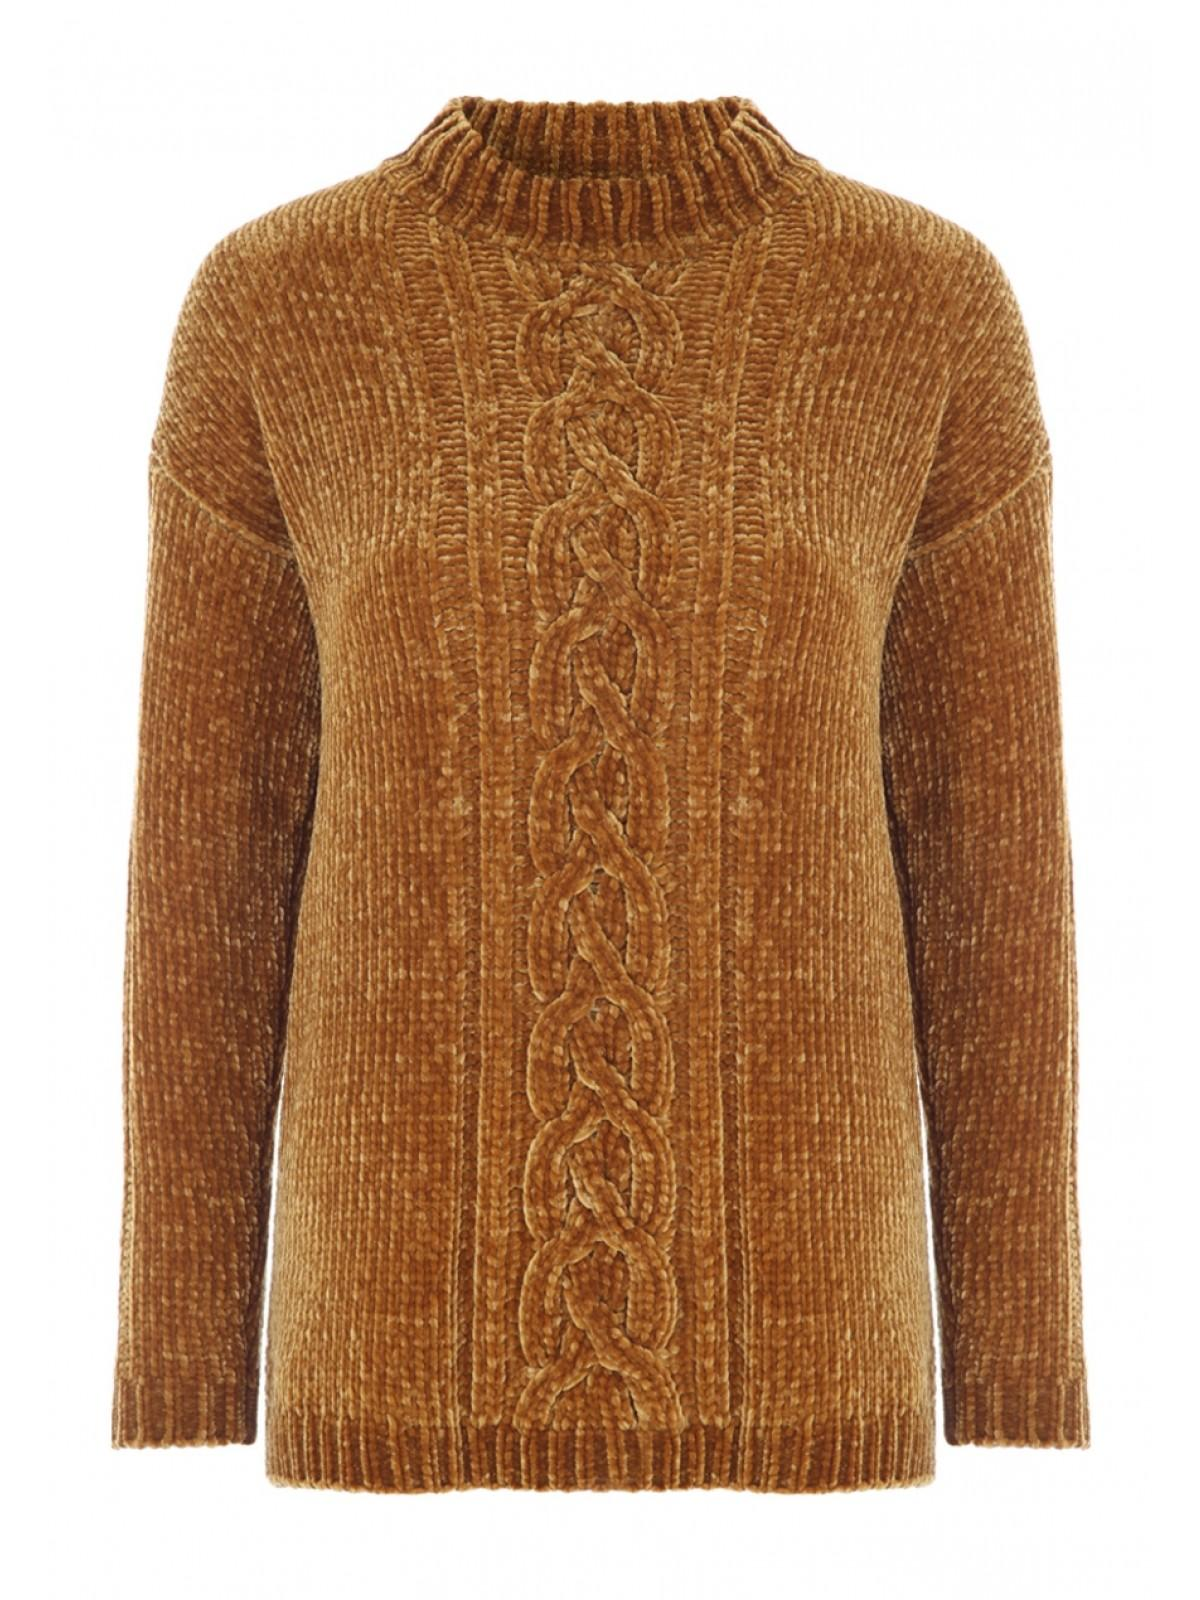 c03960b3dba16c Home; Womens Mustard Cable Knit Chenille Jumper. Back. PreviousNext